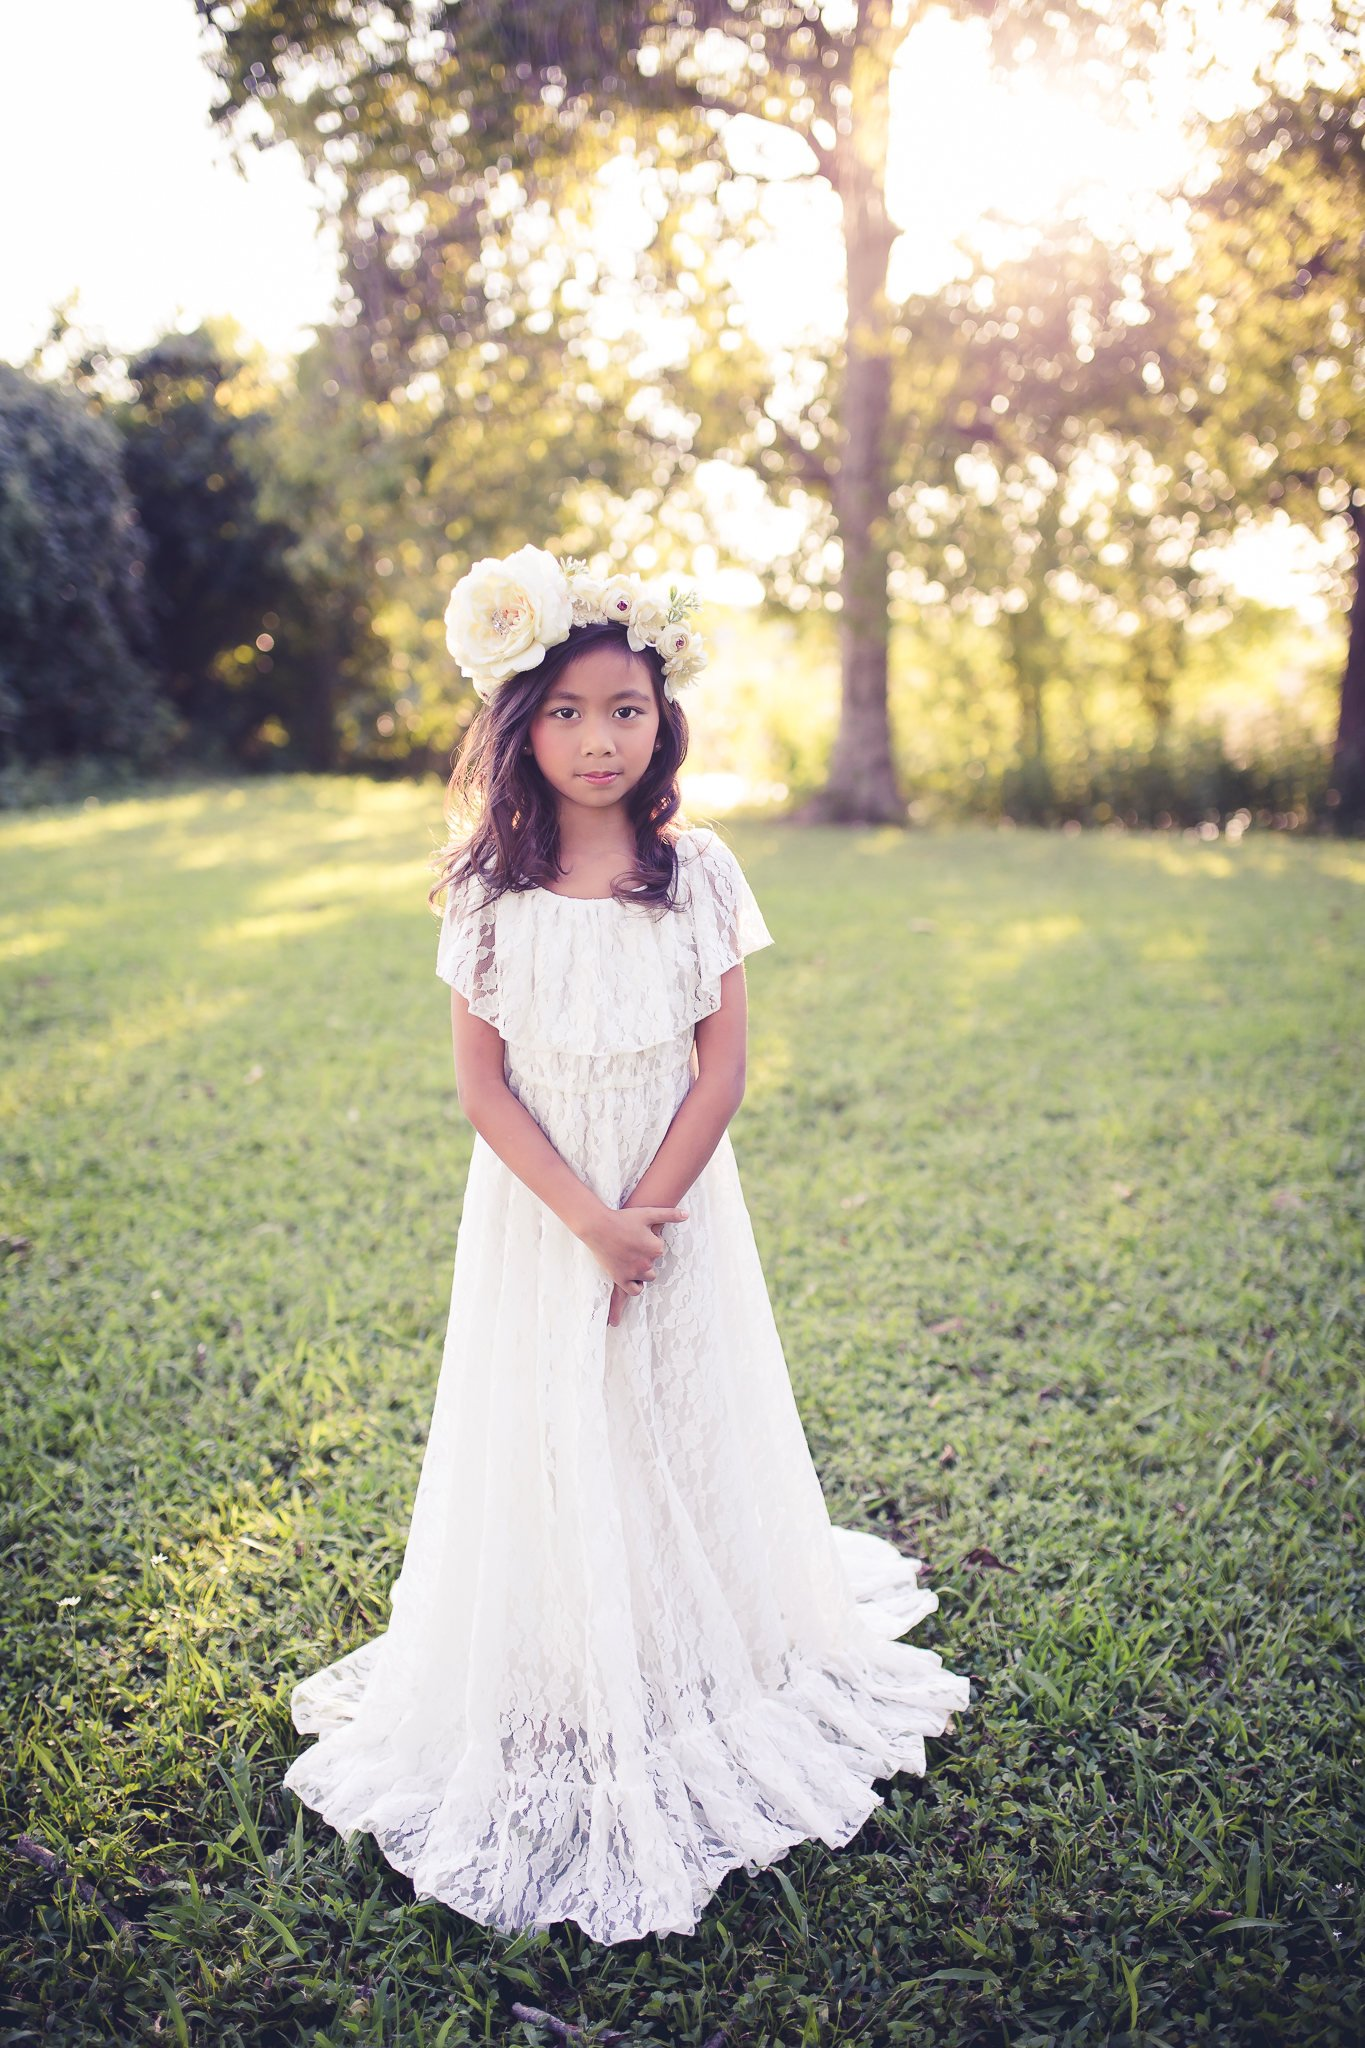 White Flower Girl Dress, White Lace, Rustic.jpg